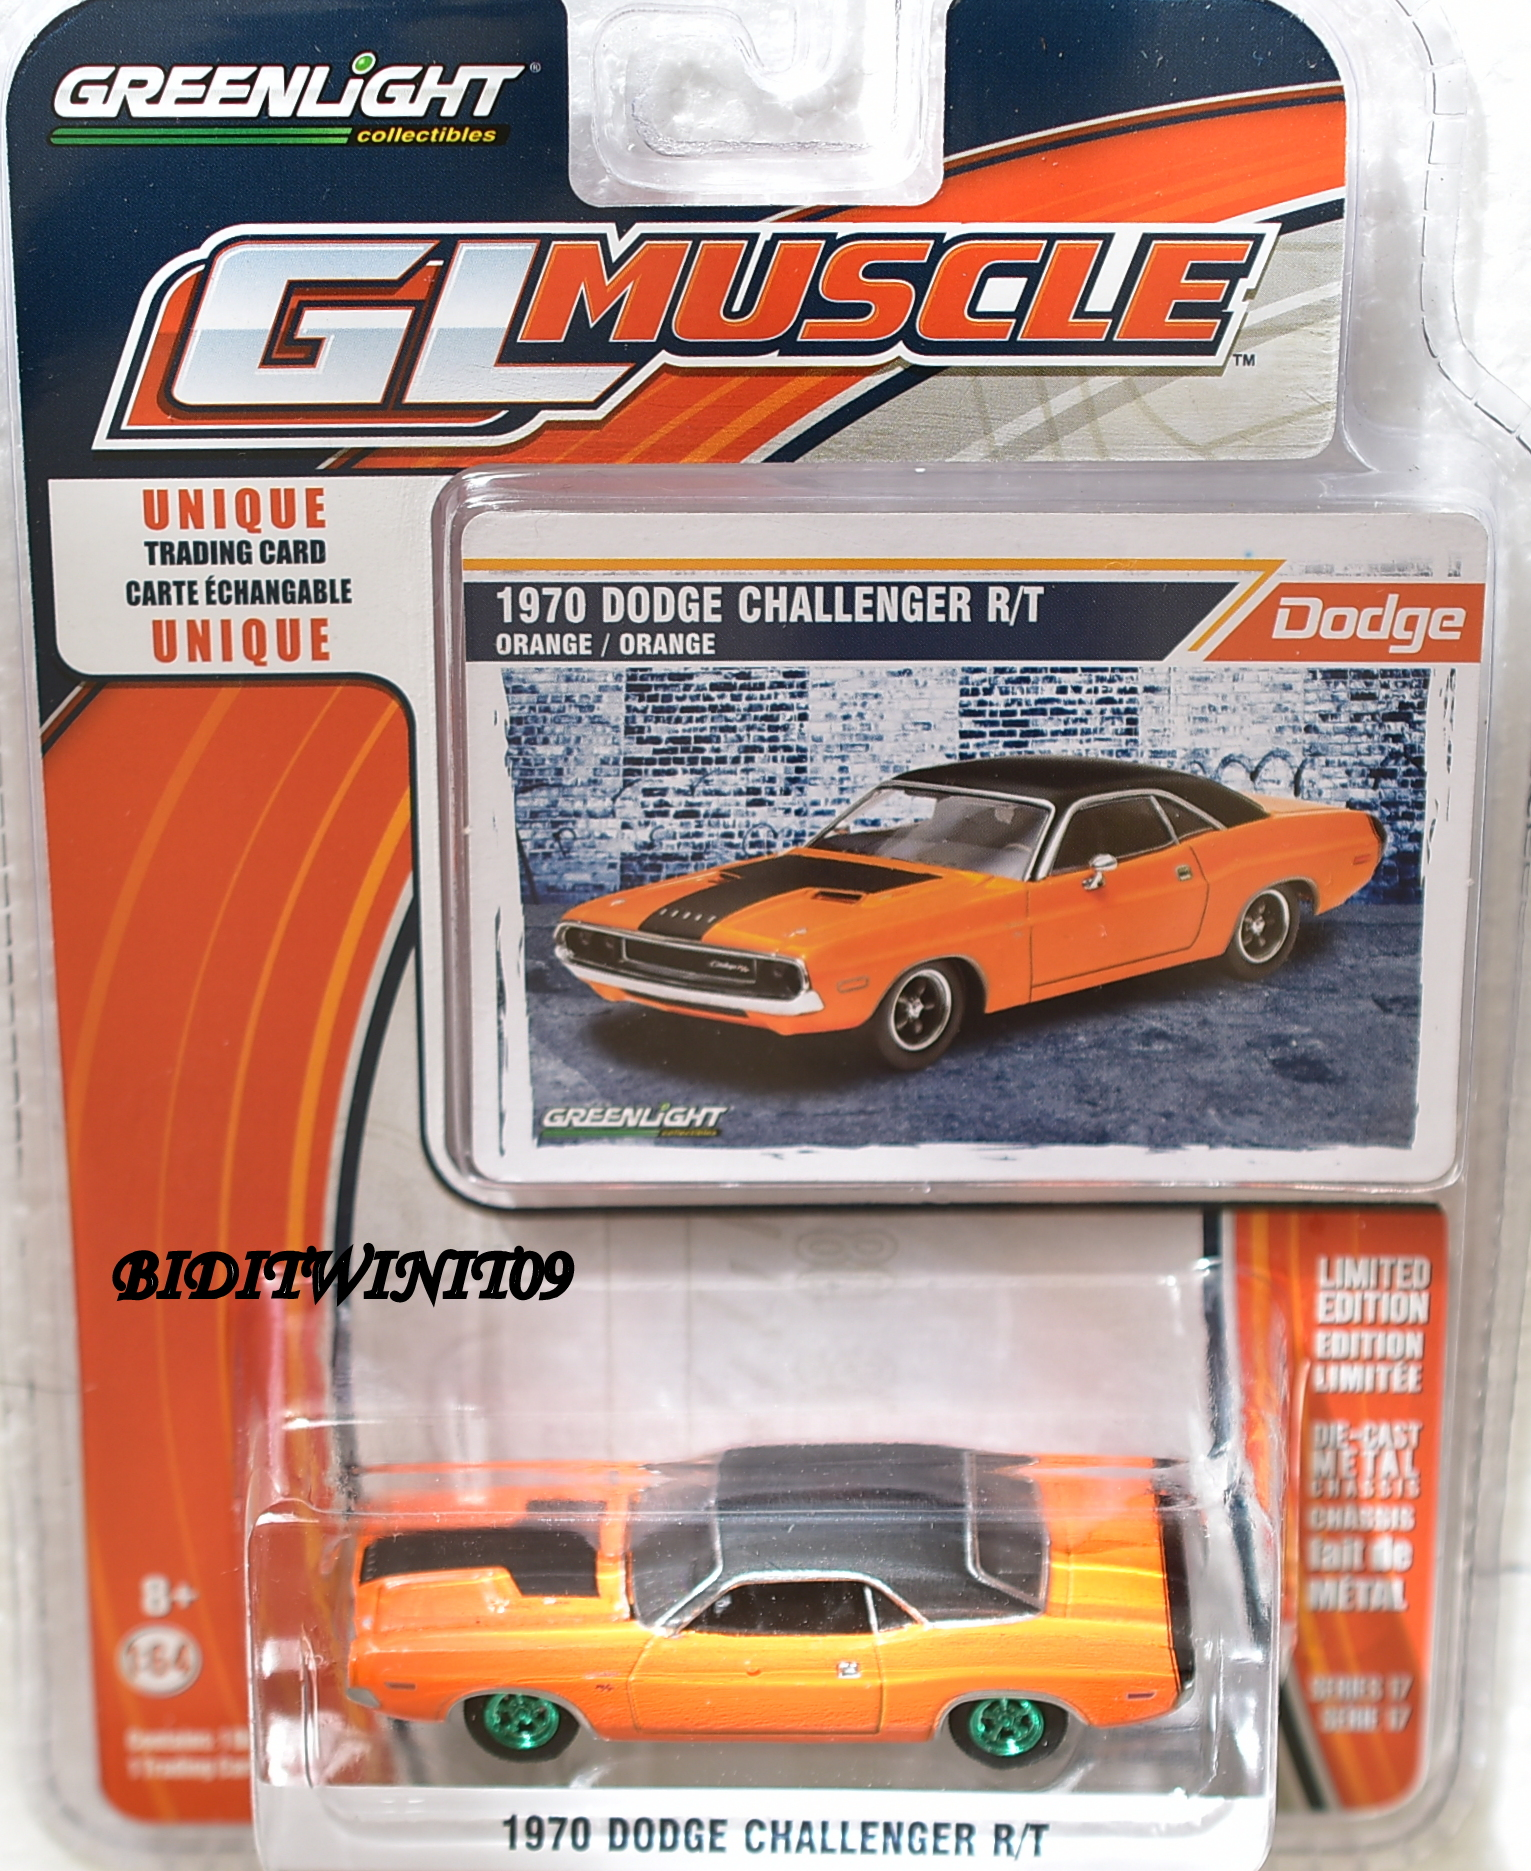 GREENLIGHT GLMUSCLE SERIES 17 1970 DODGE CHALLENGER R/T GREEN MACHINE